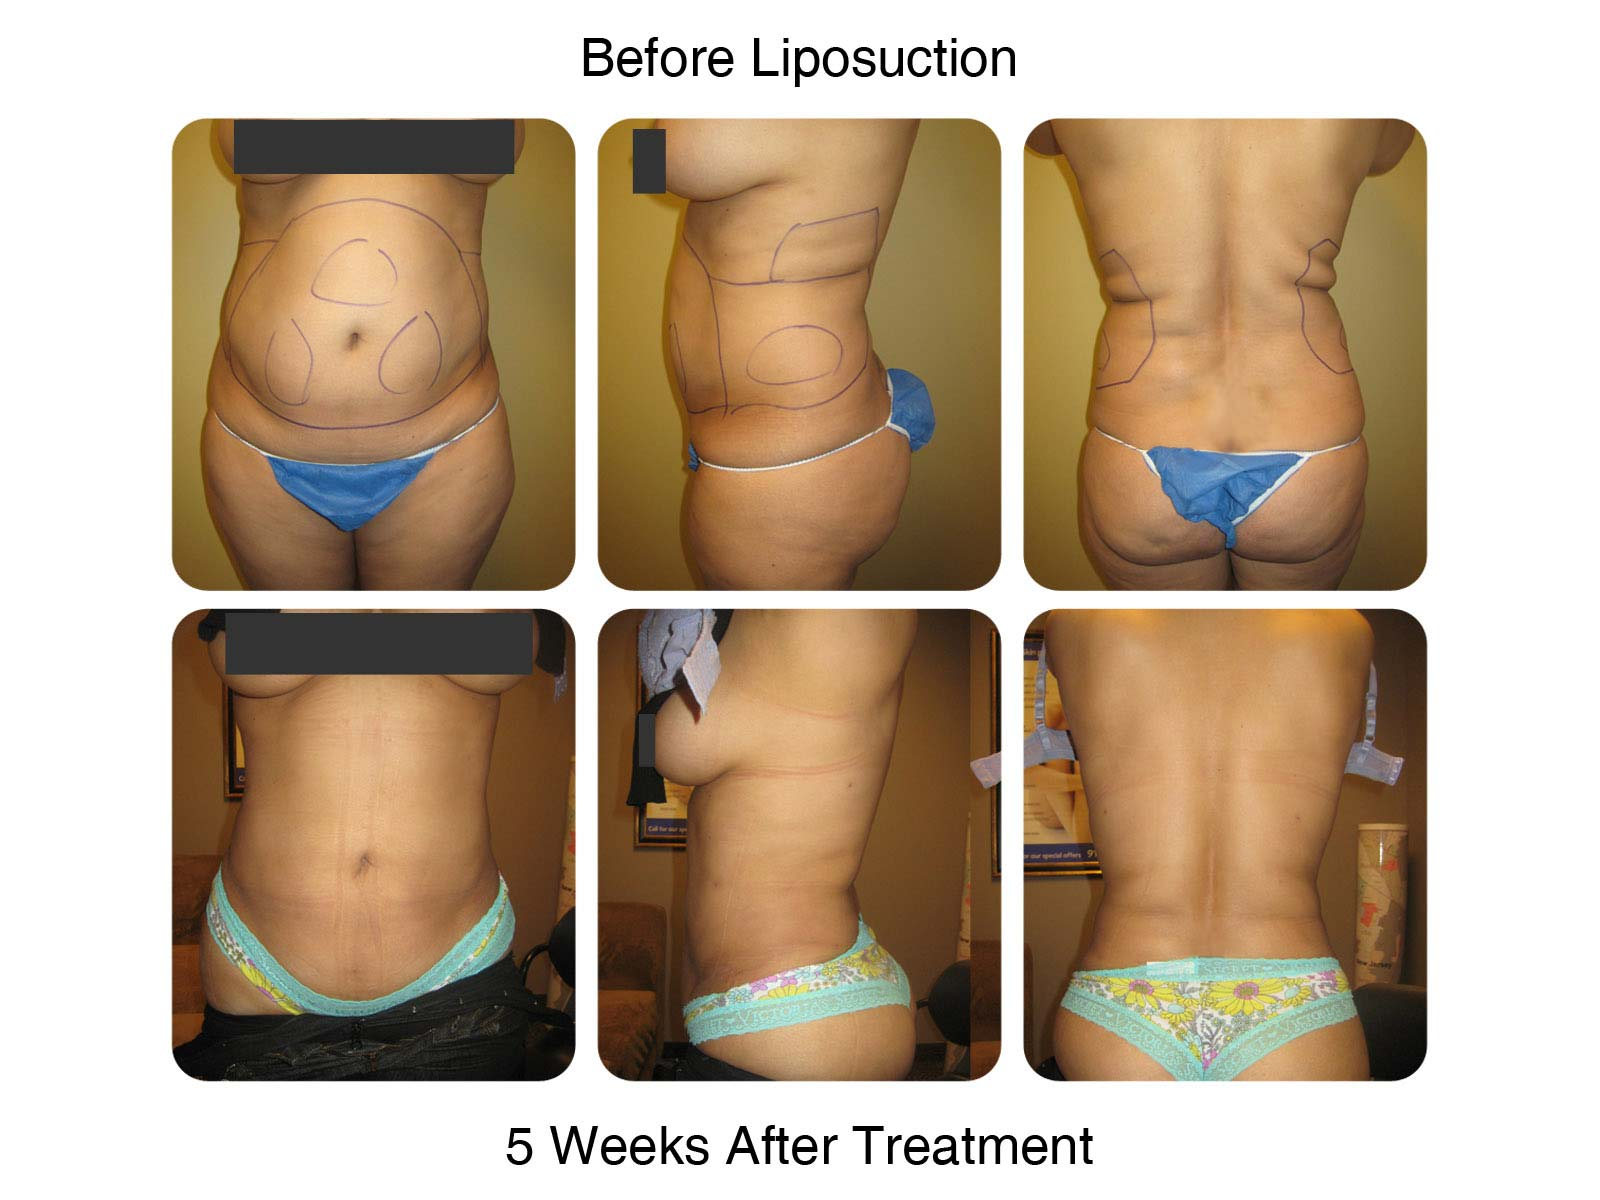 Liposuction - Results 5 Weeks After Treatment